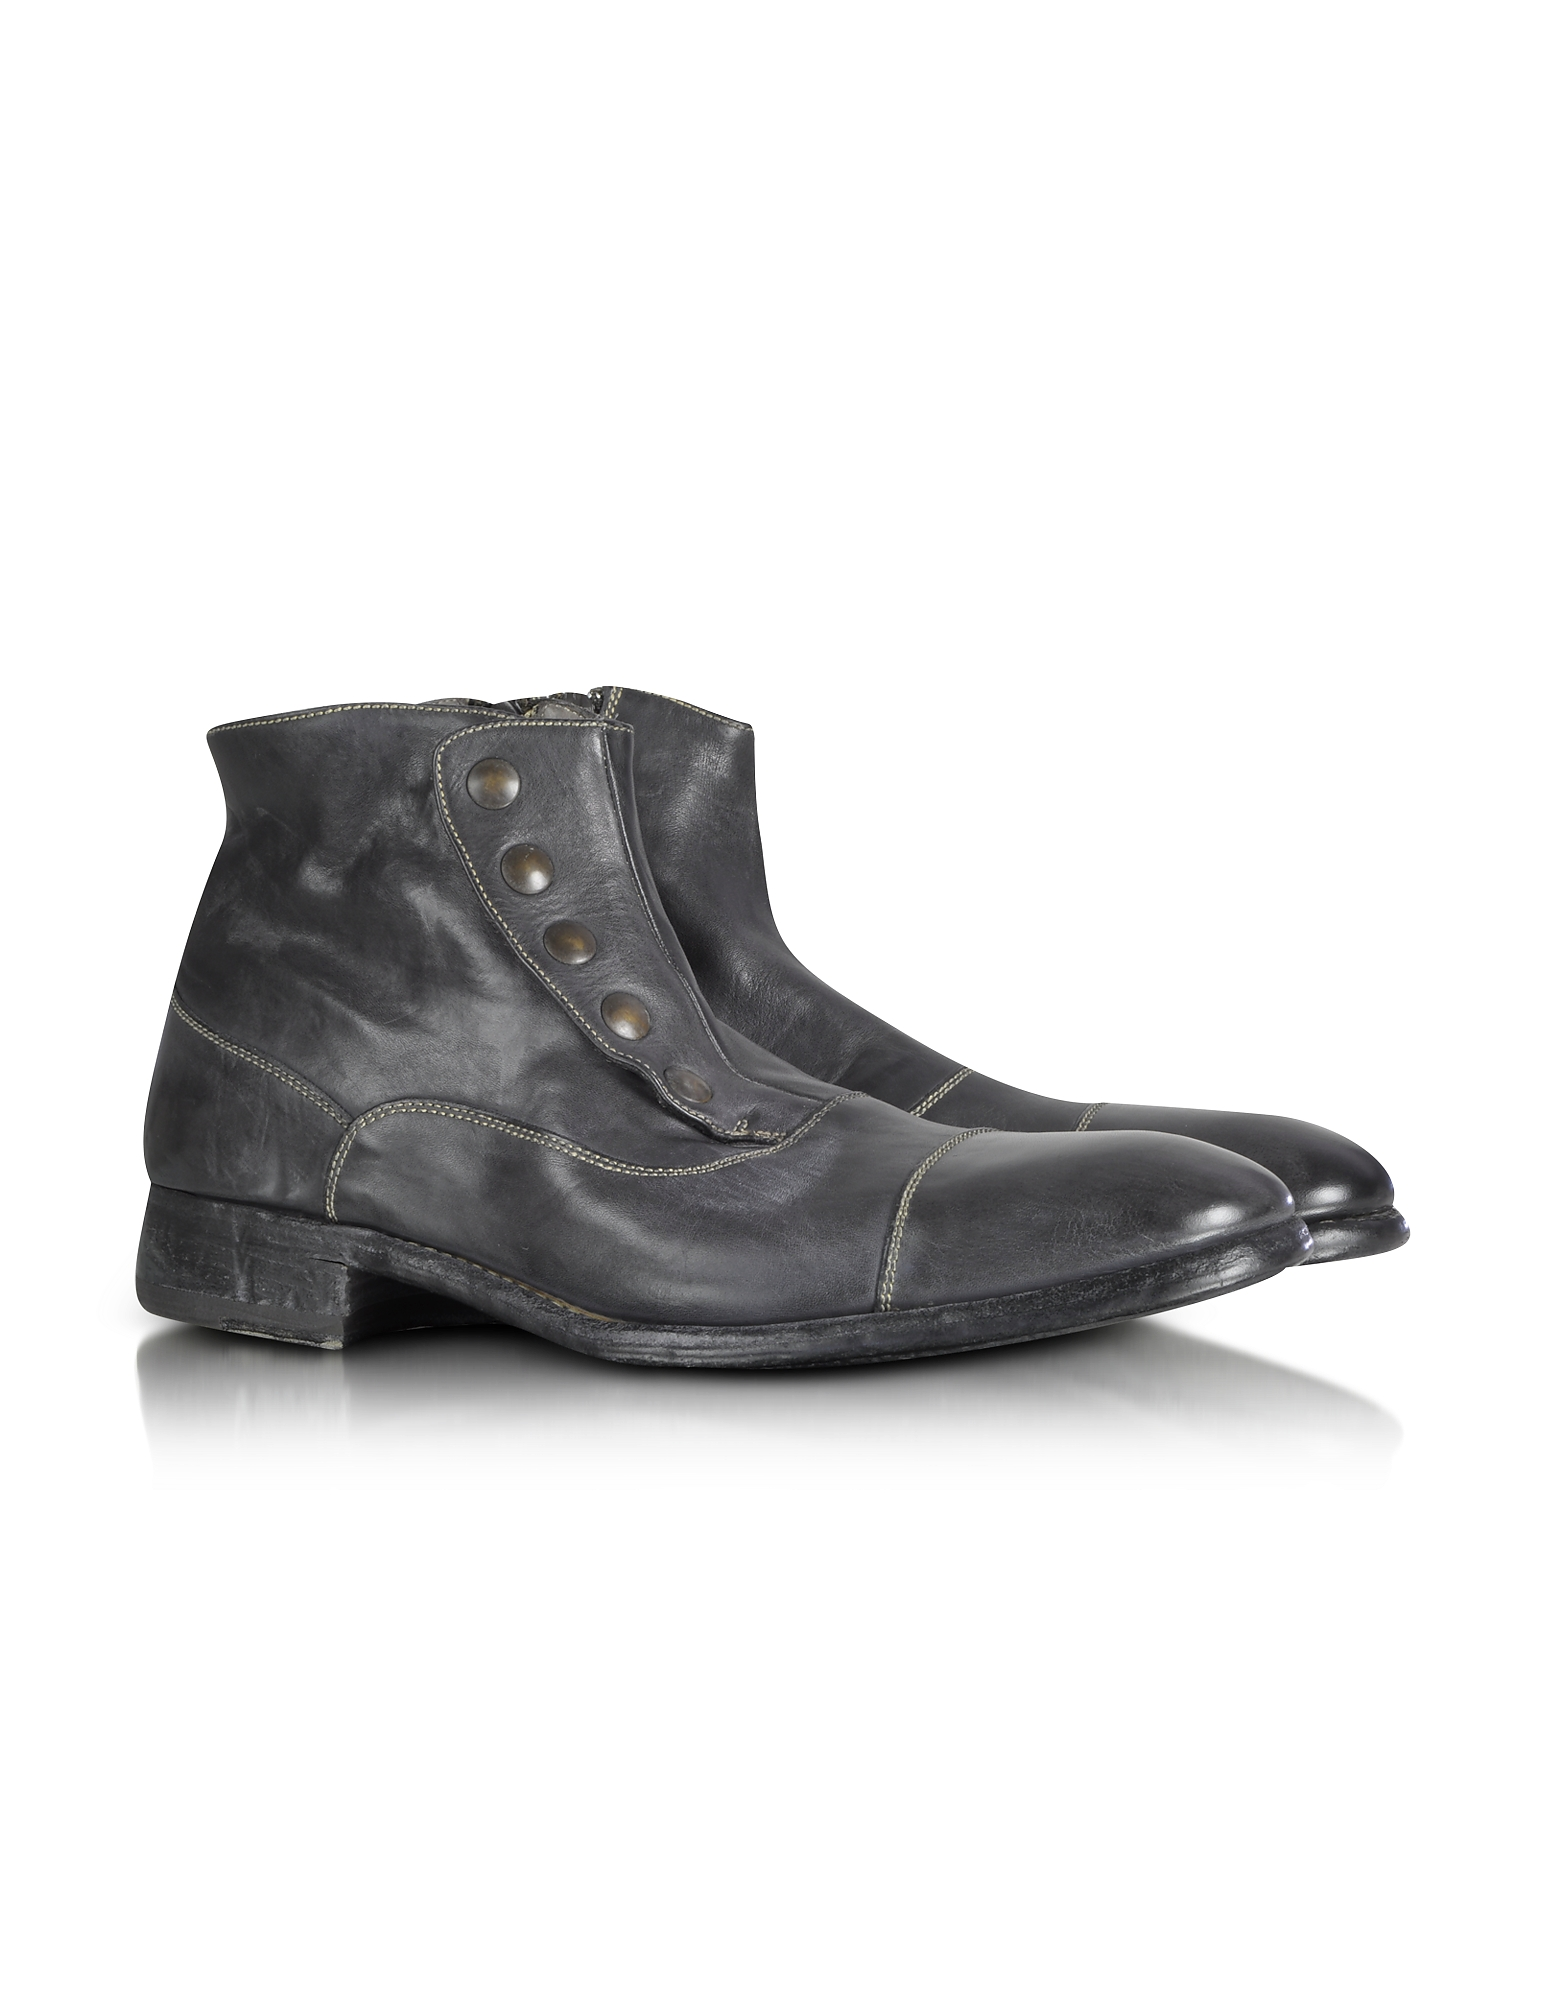 Forzieri Shoes, Smoke Grey Washed Leather Boots